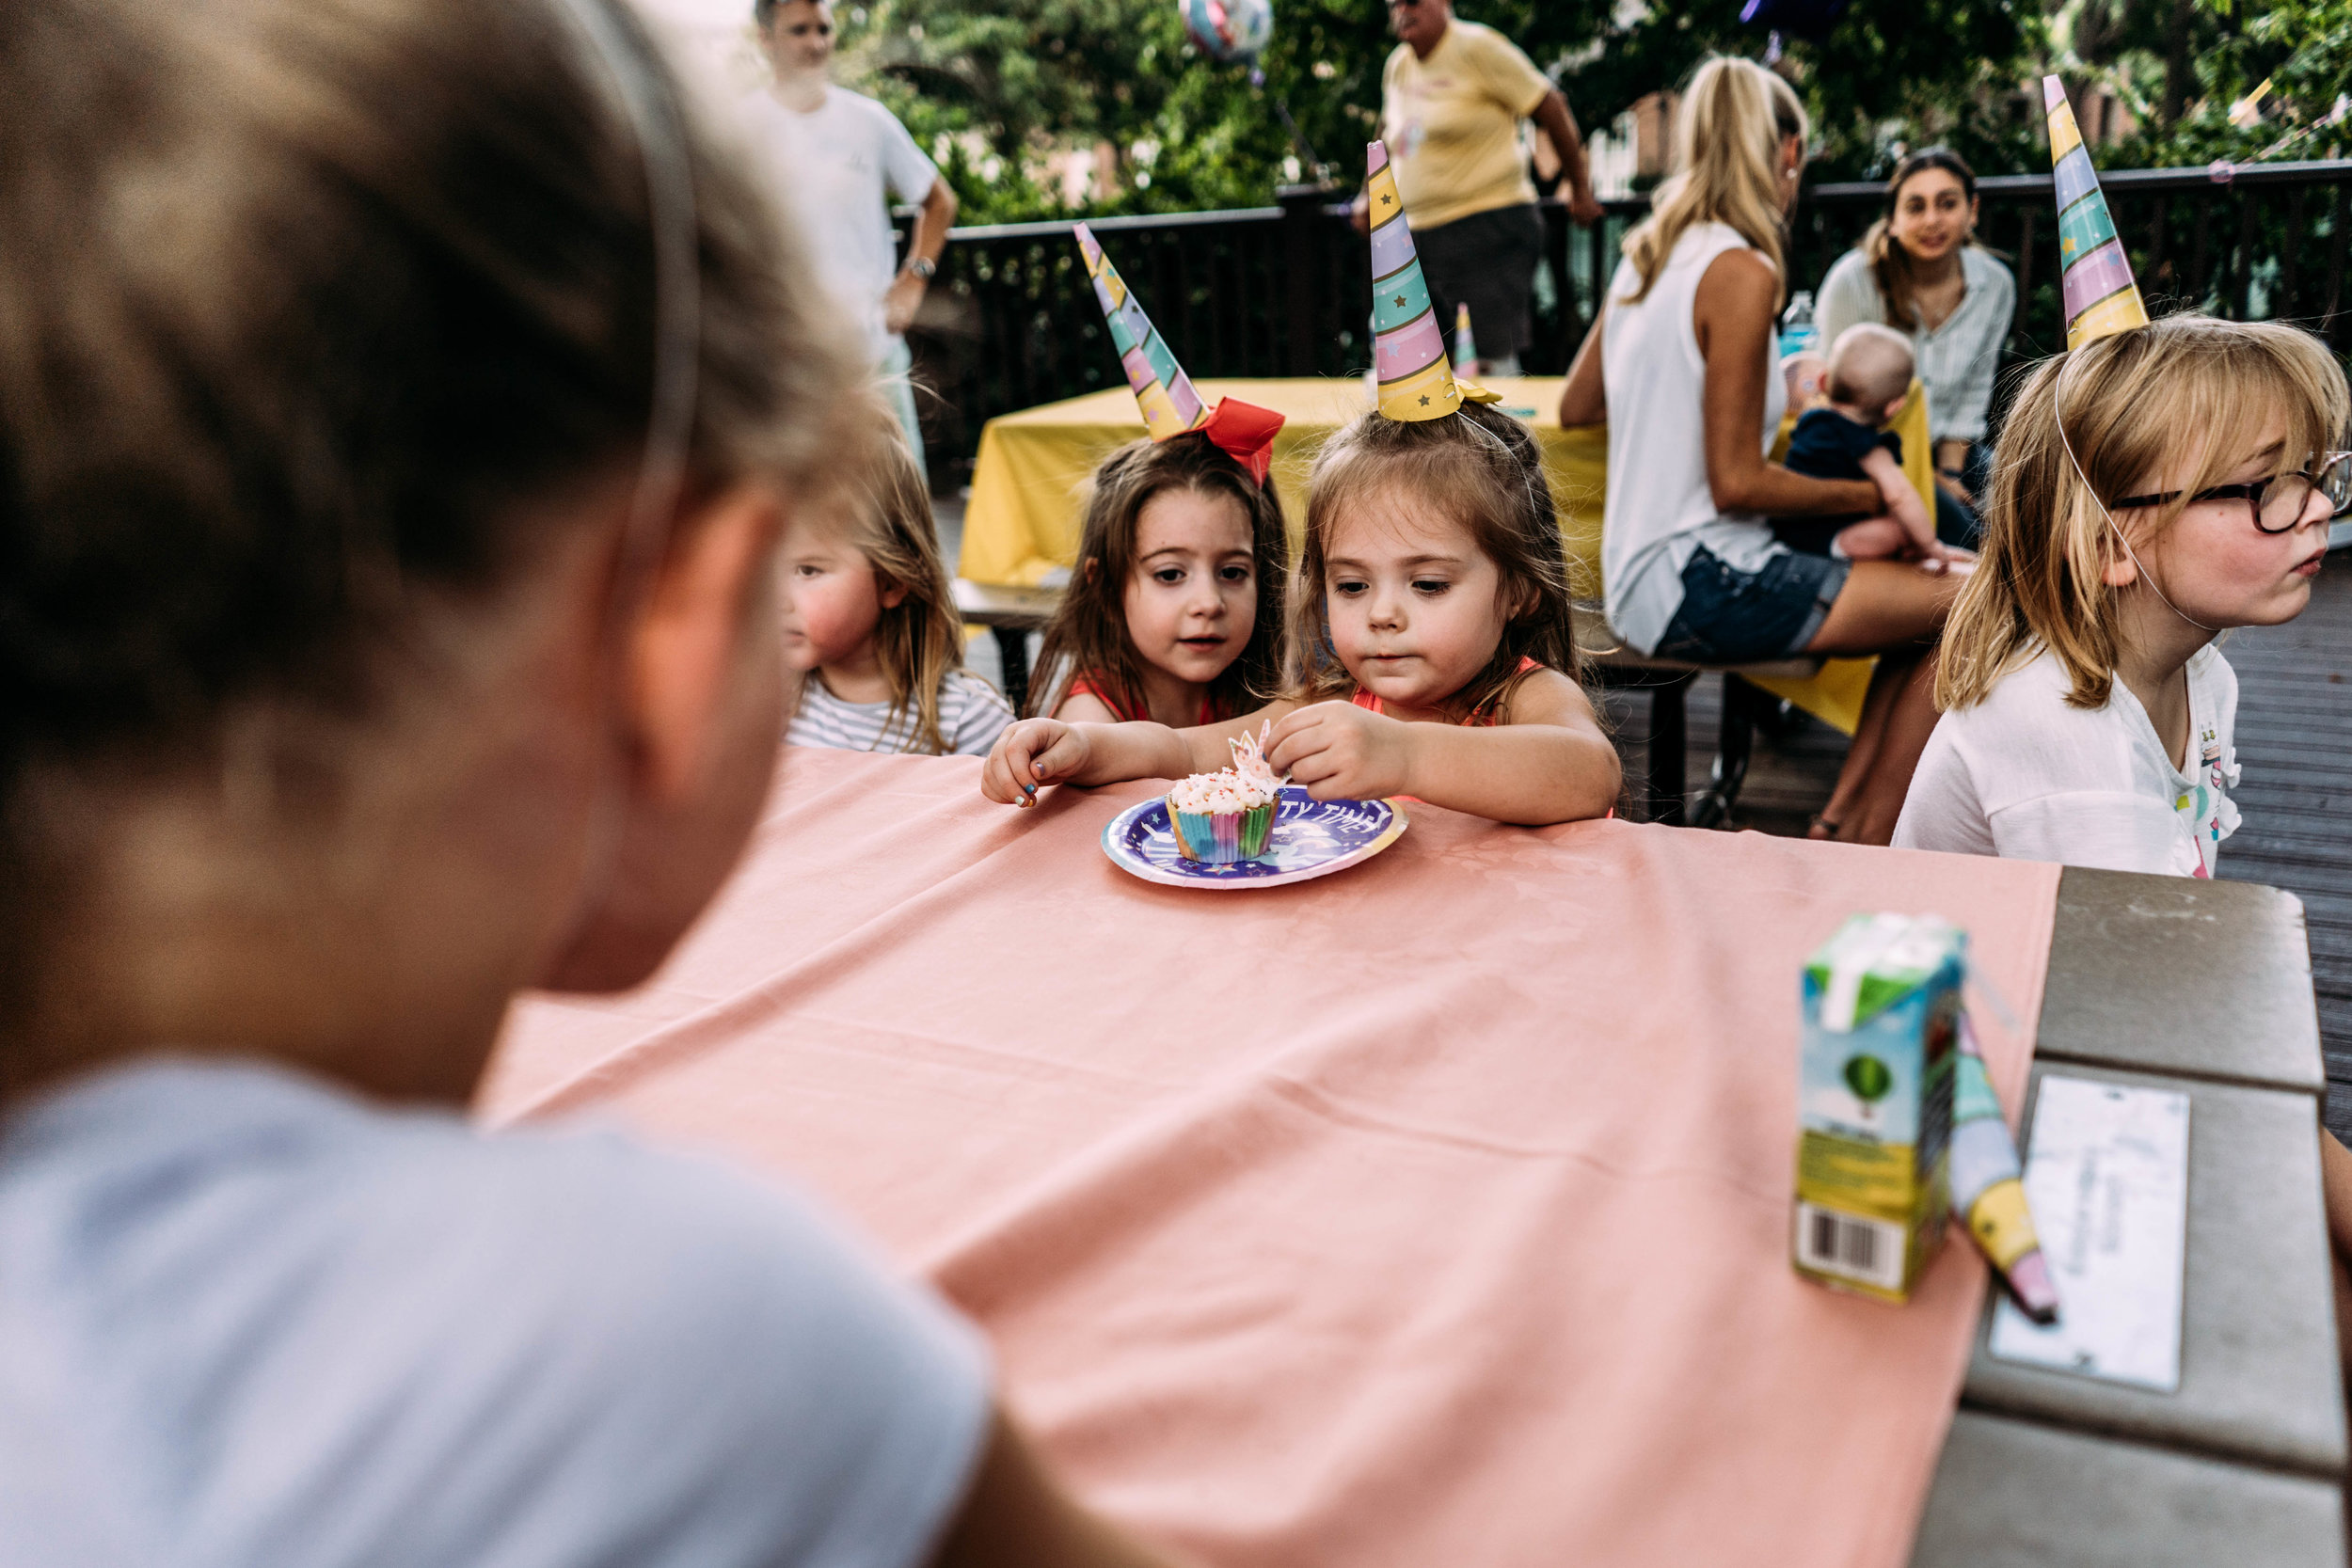 birthday party at the park-24.jpg